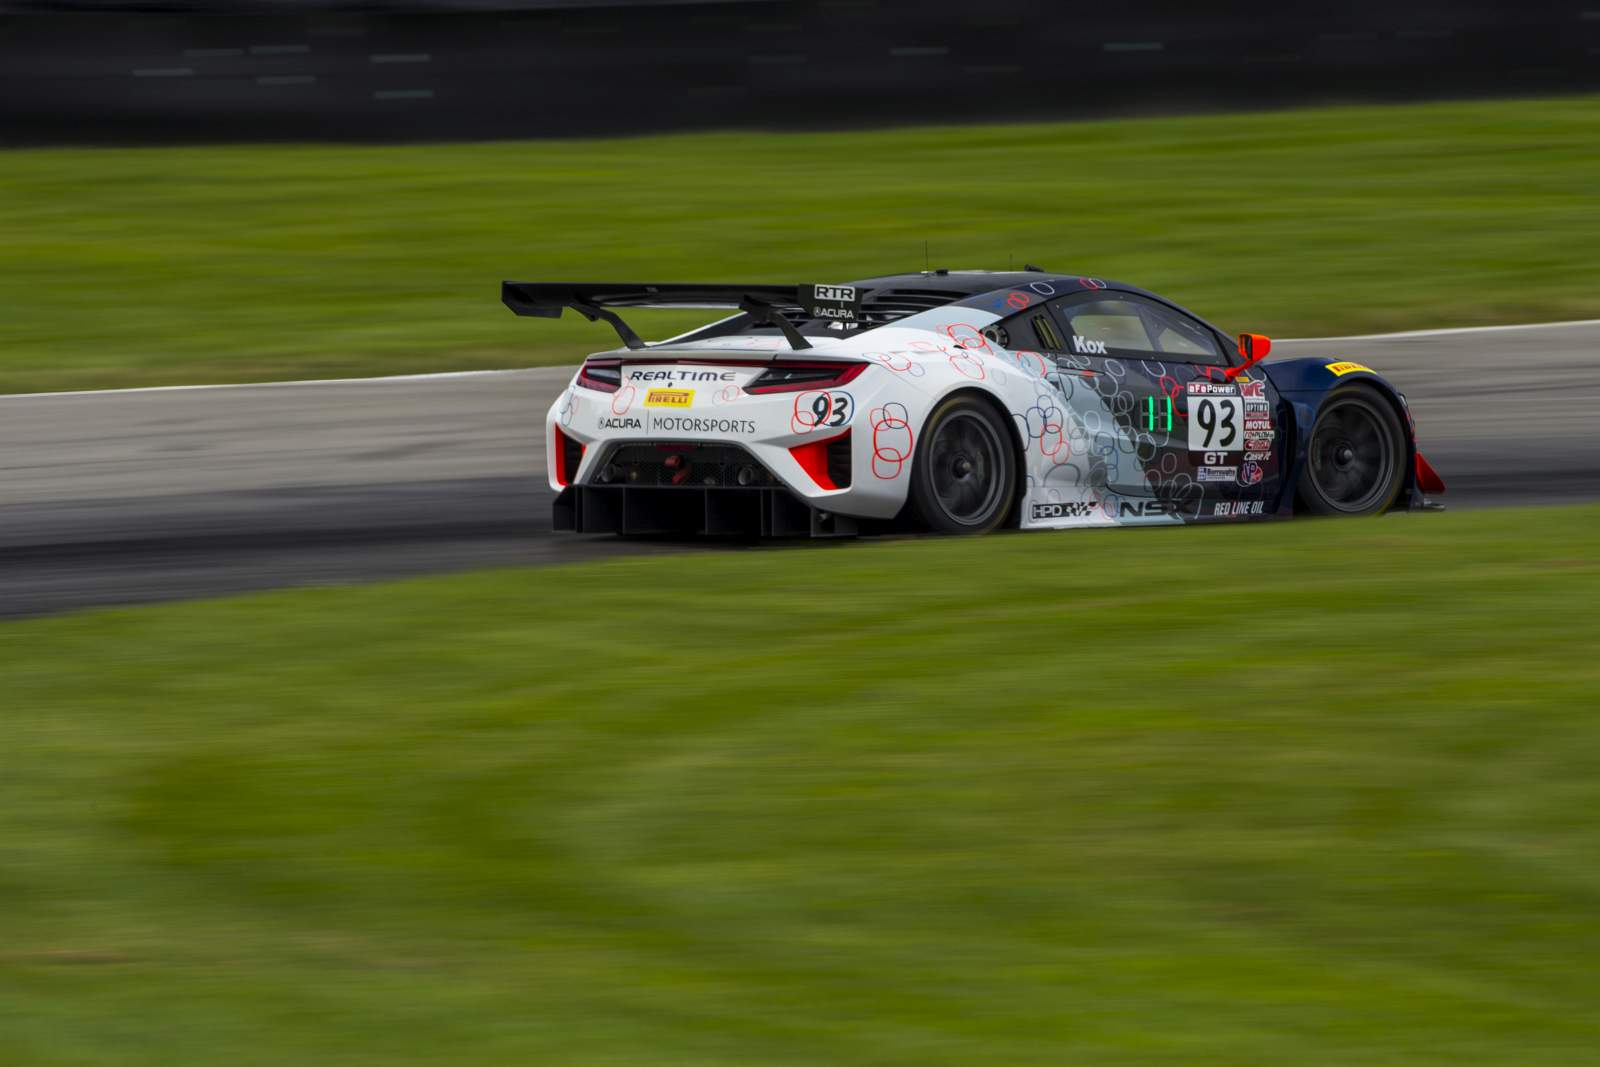 peter-kox-realtime-racing-pirelli-world-challenge-mid-ohio-15